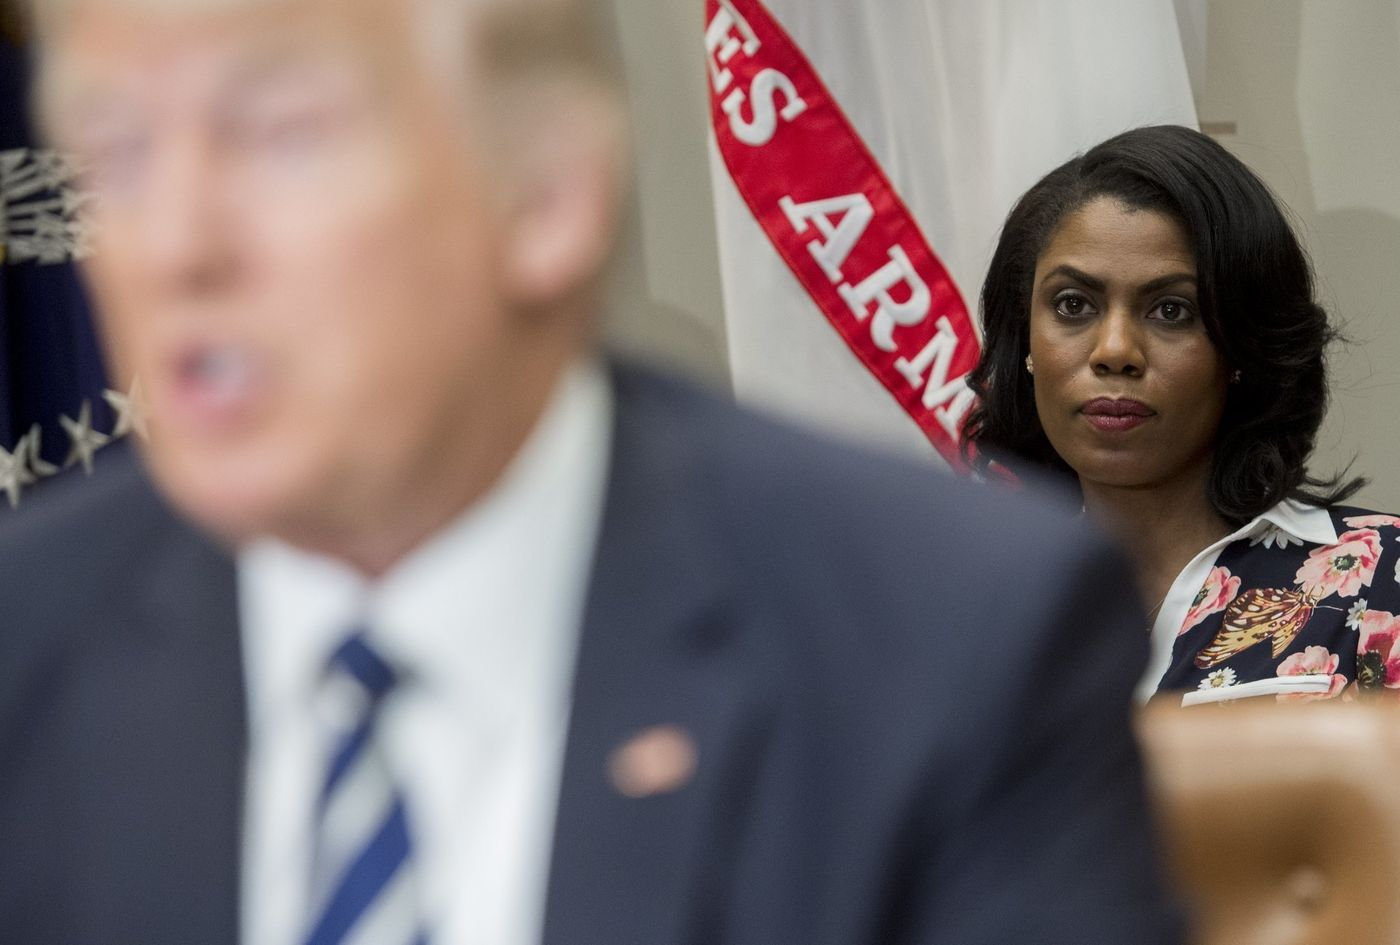 Omarosa to release tell-all book on Donald Trump 'Unhinged' in August